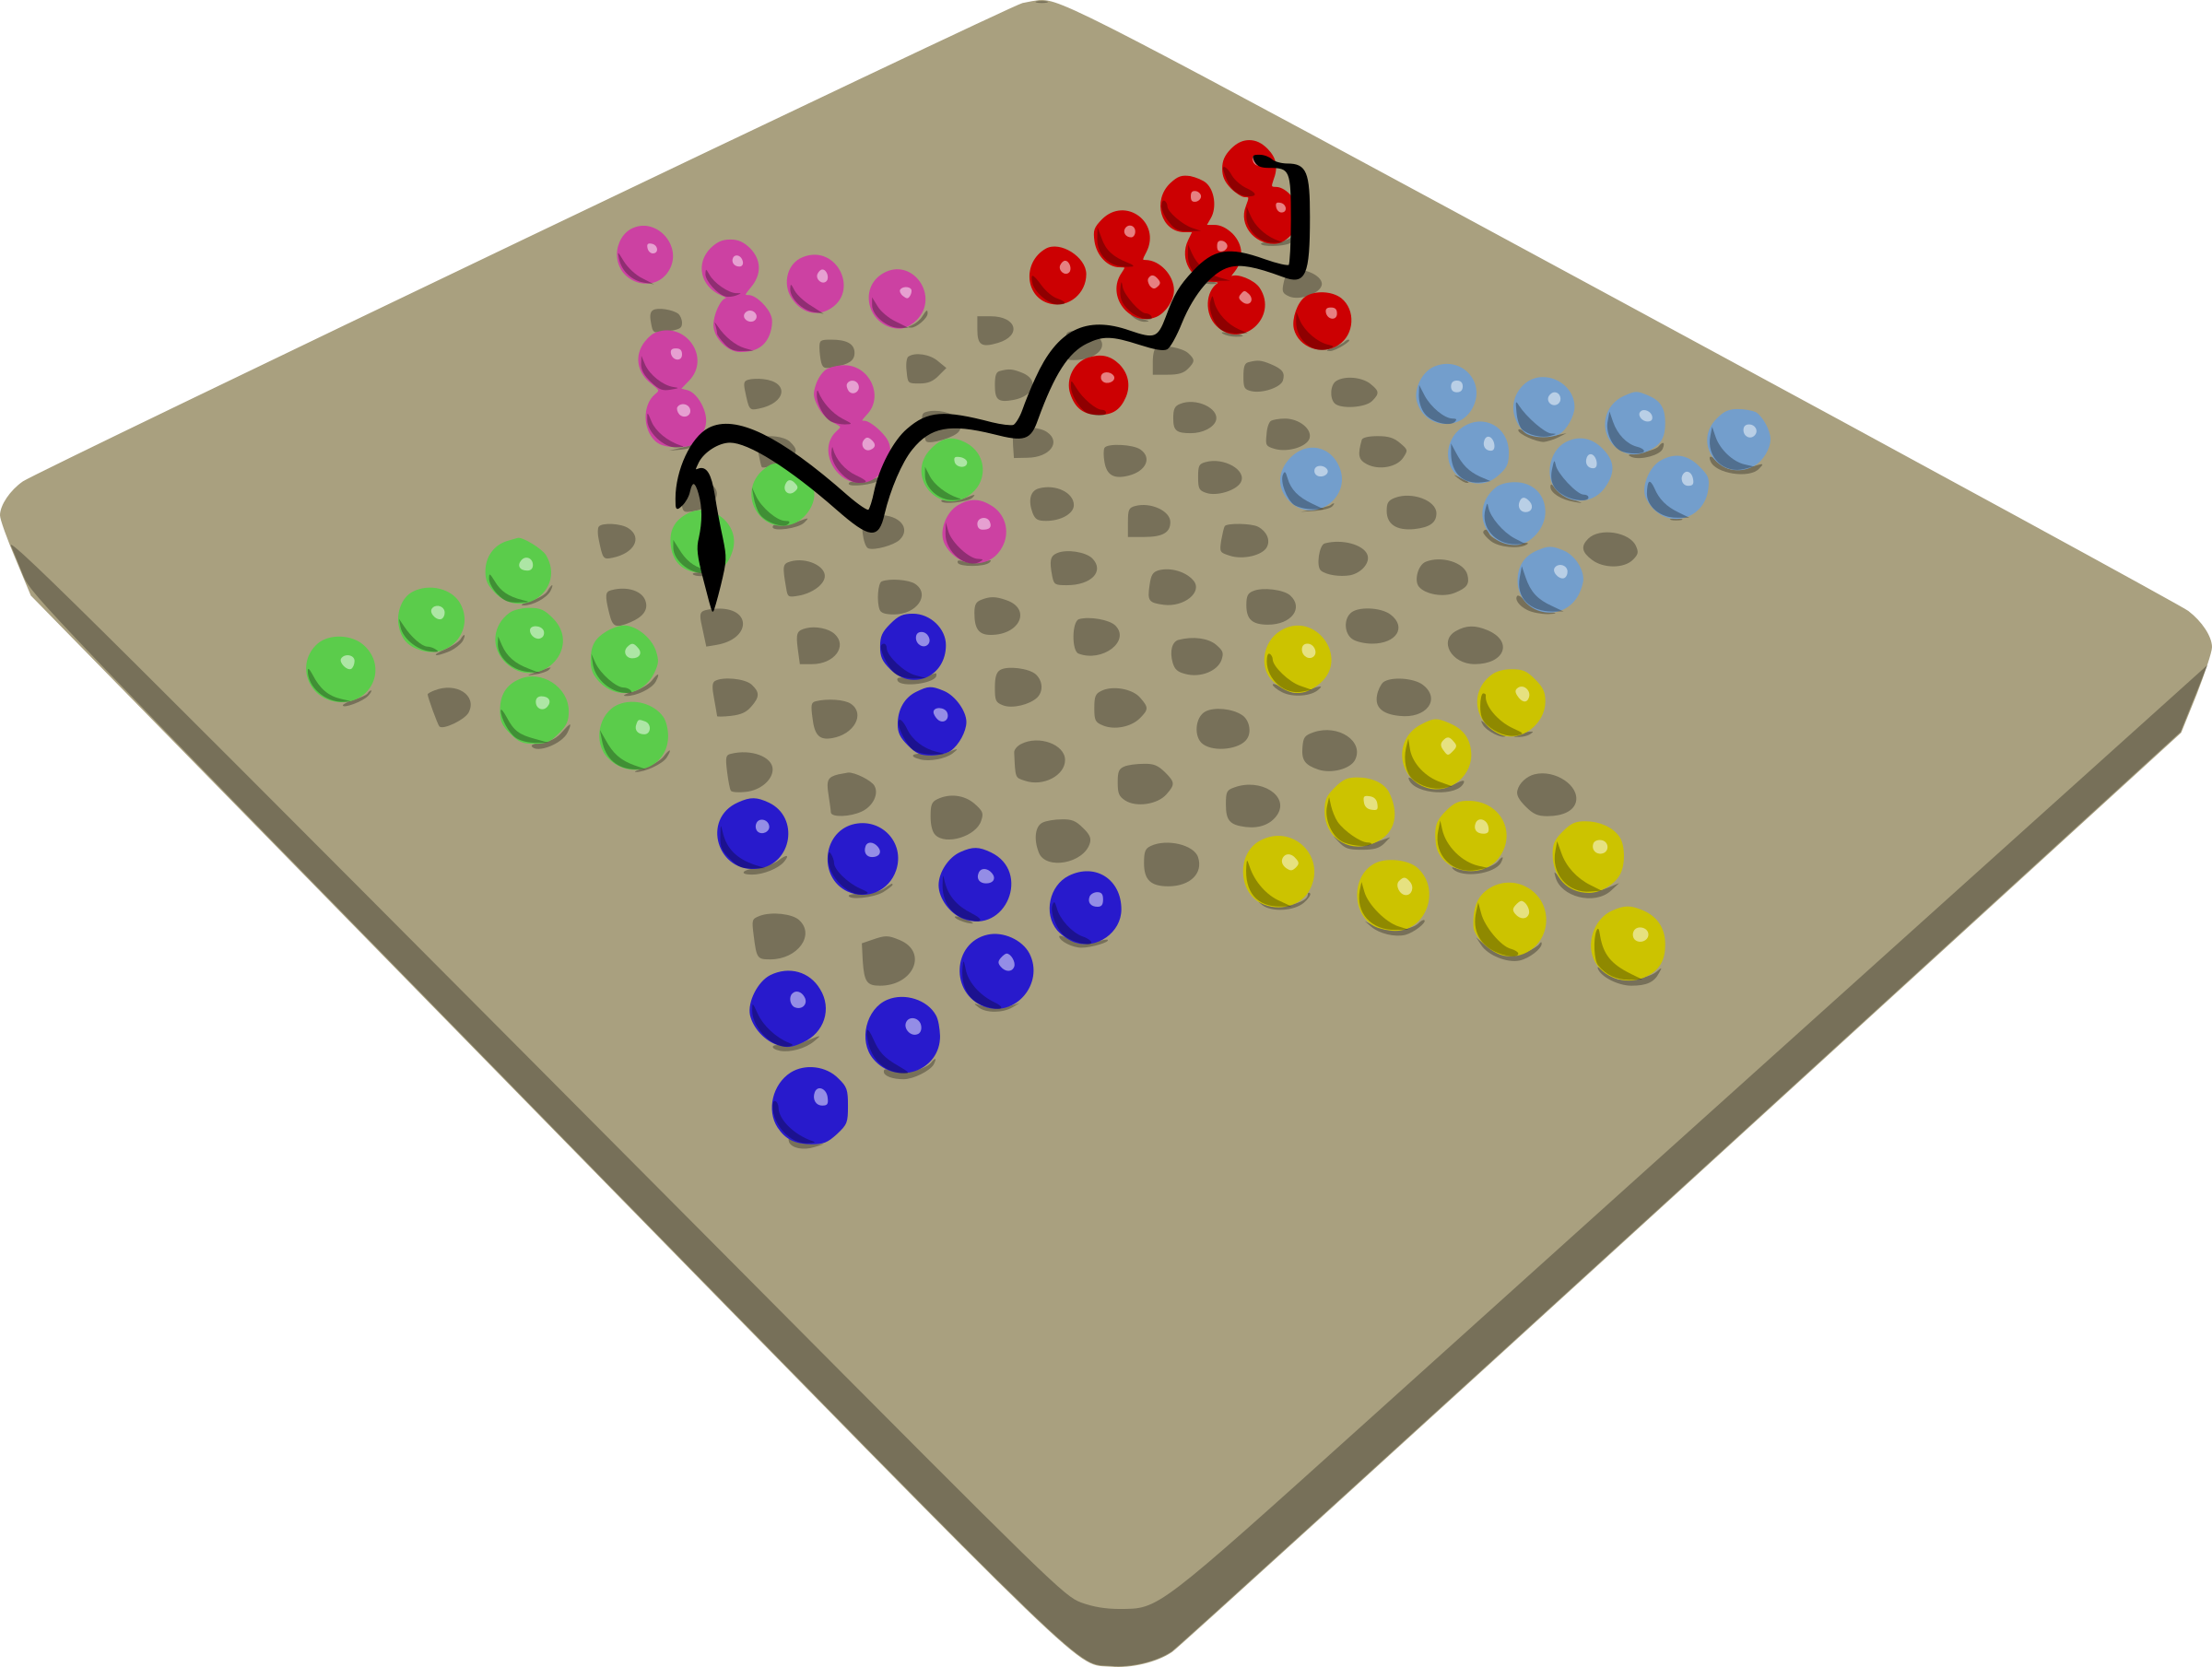 Chinese Checkers Game In Progress by mazeo